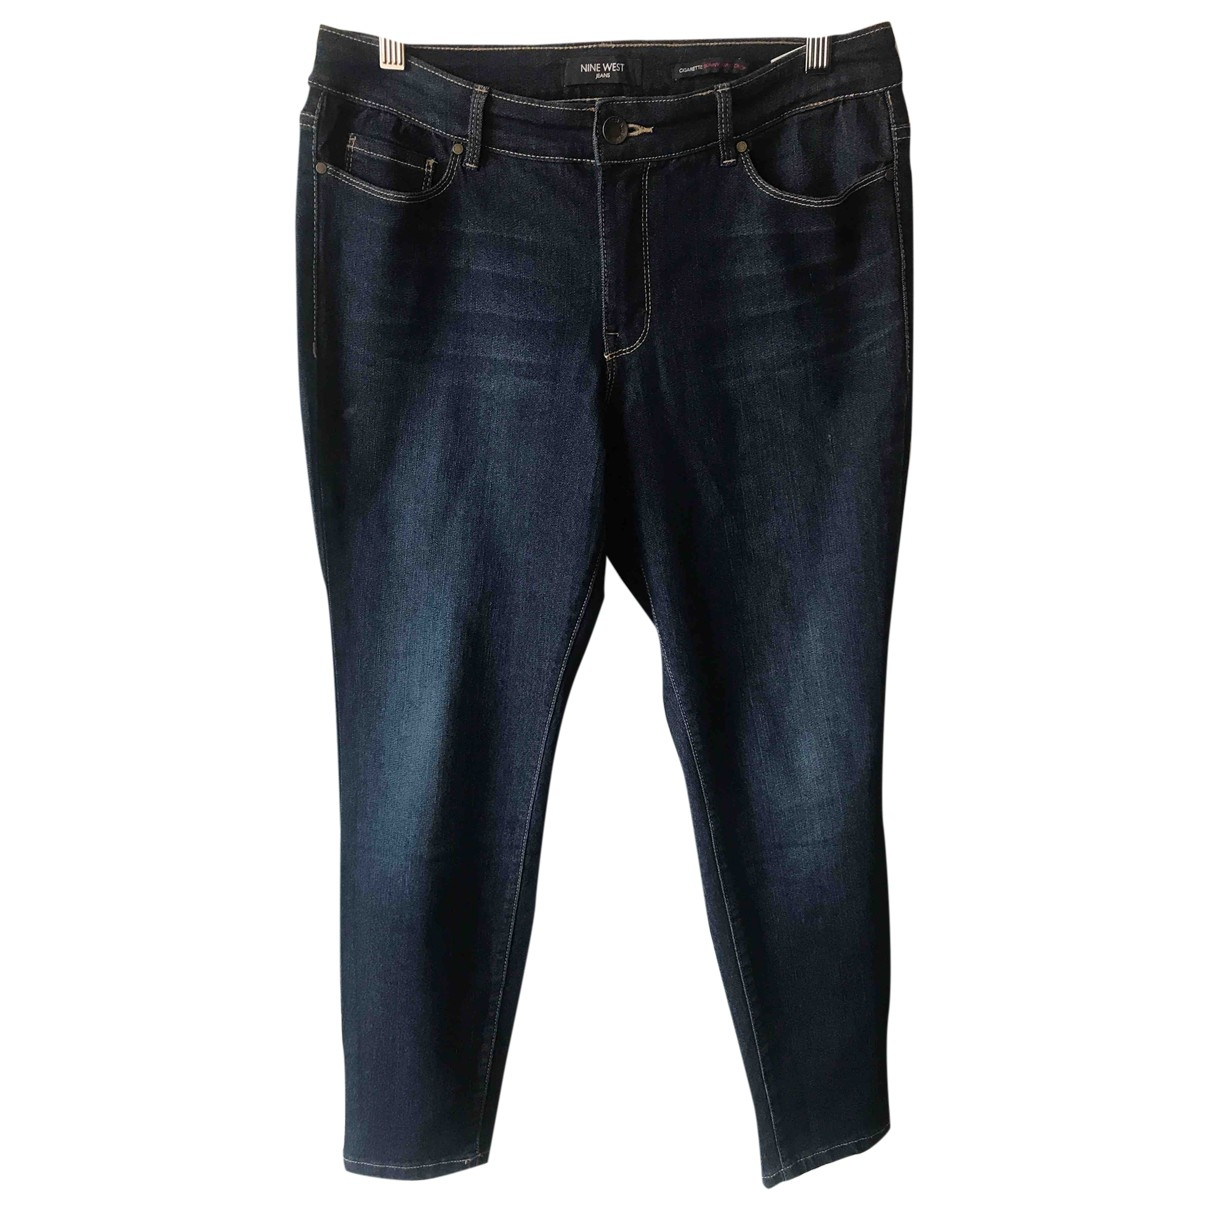 Nine West \N Navy Cotton Jeans for Women 42 FR